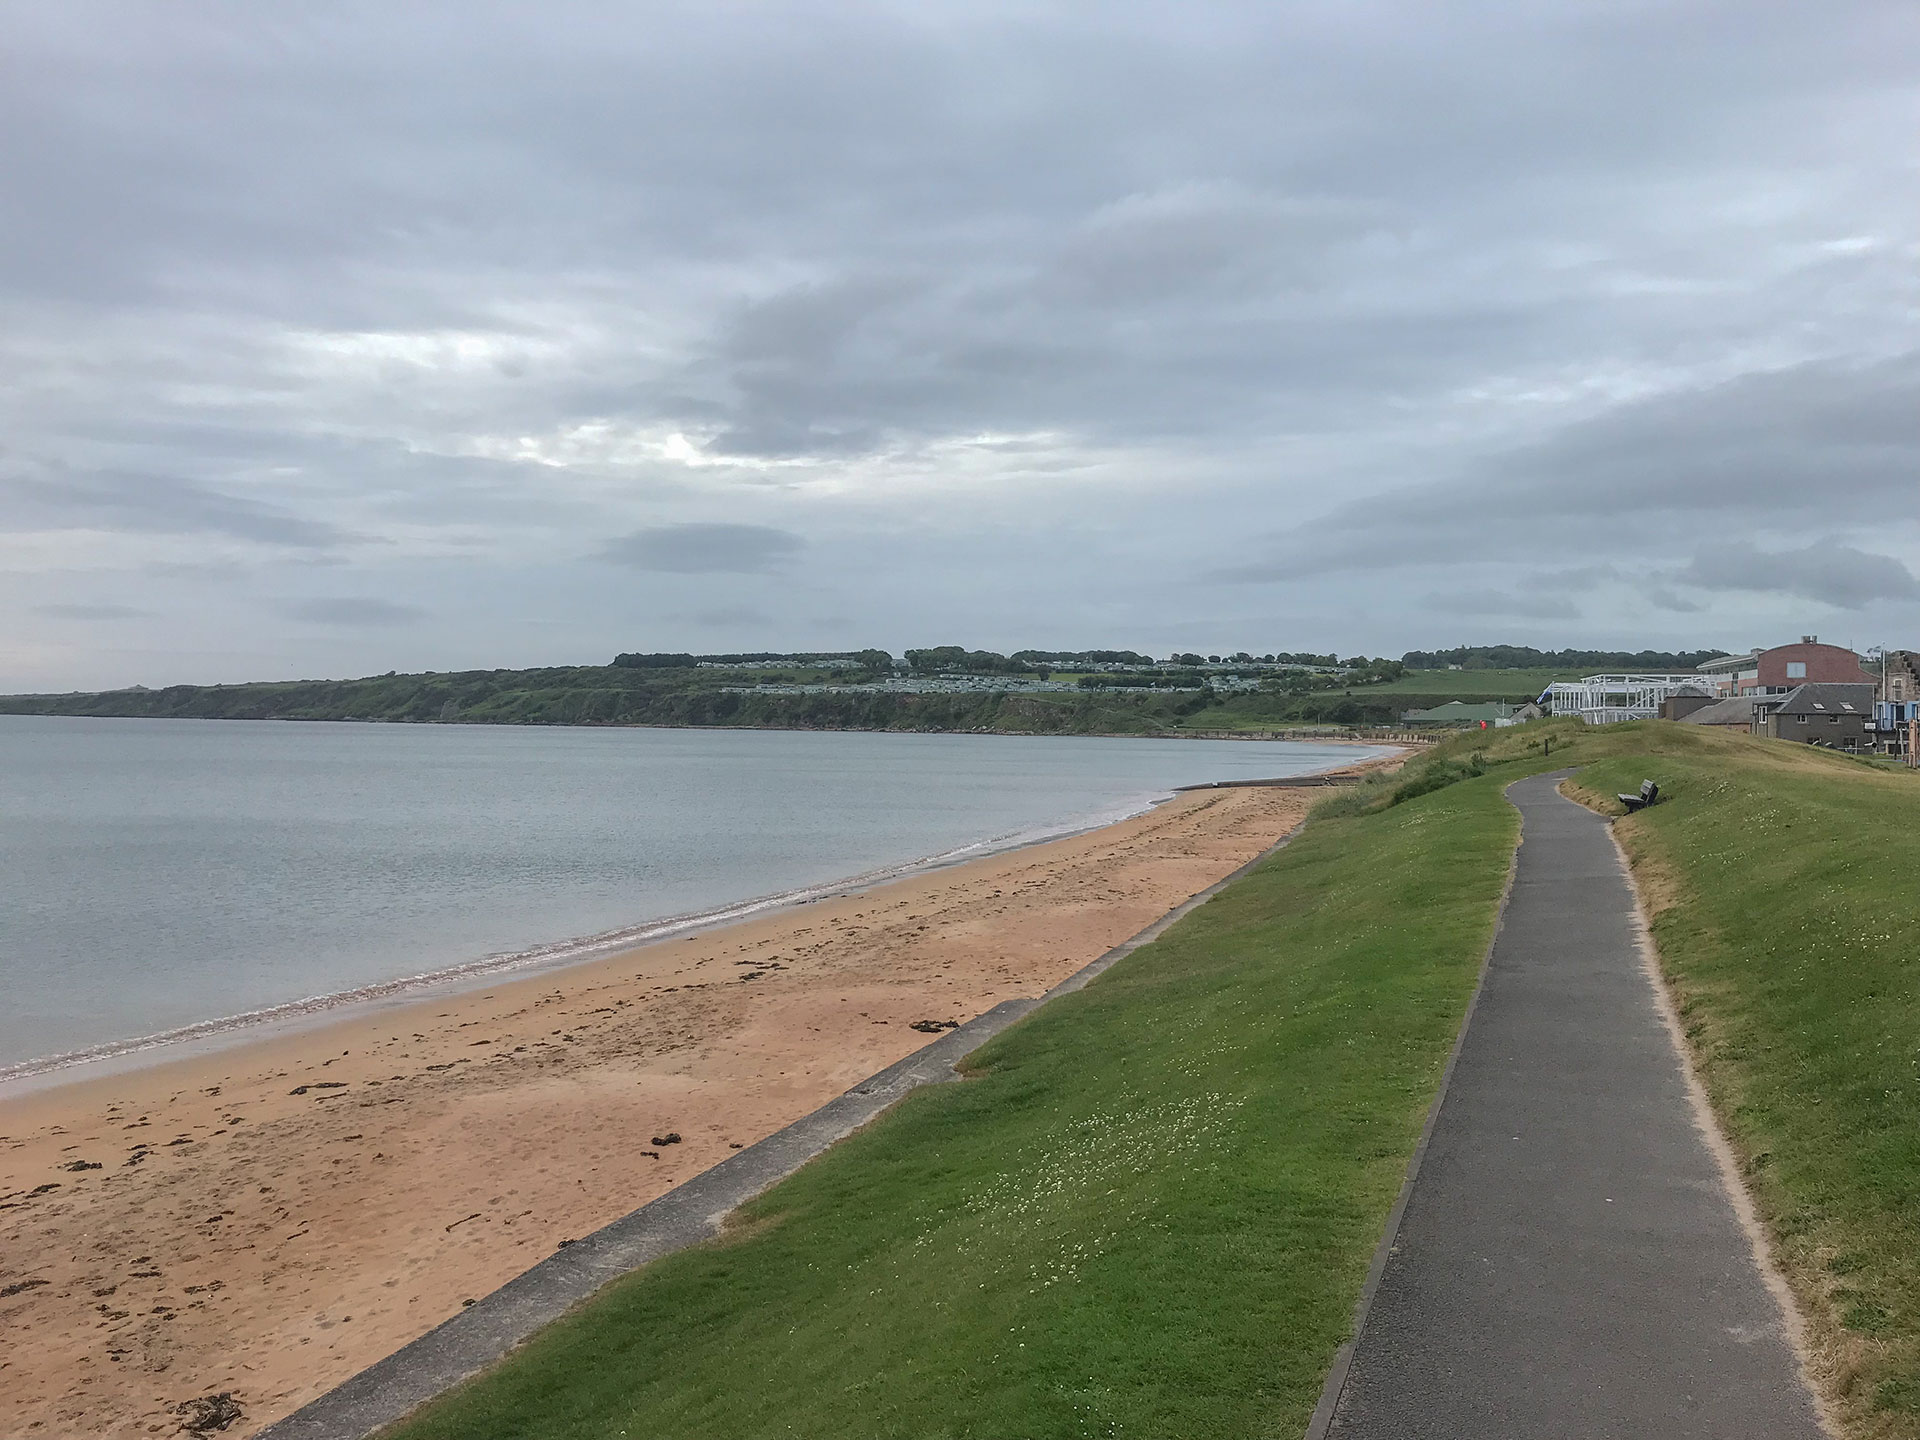 Scotland Motorcycle Tour, Day 9 - Inverness to St Andrews